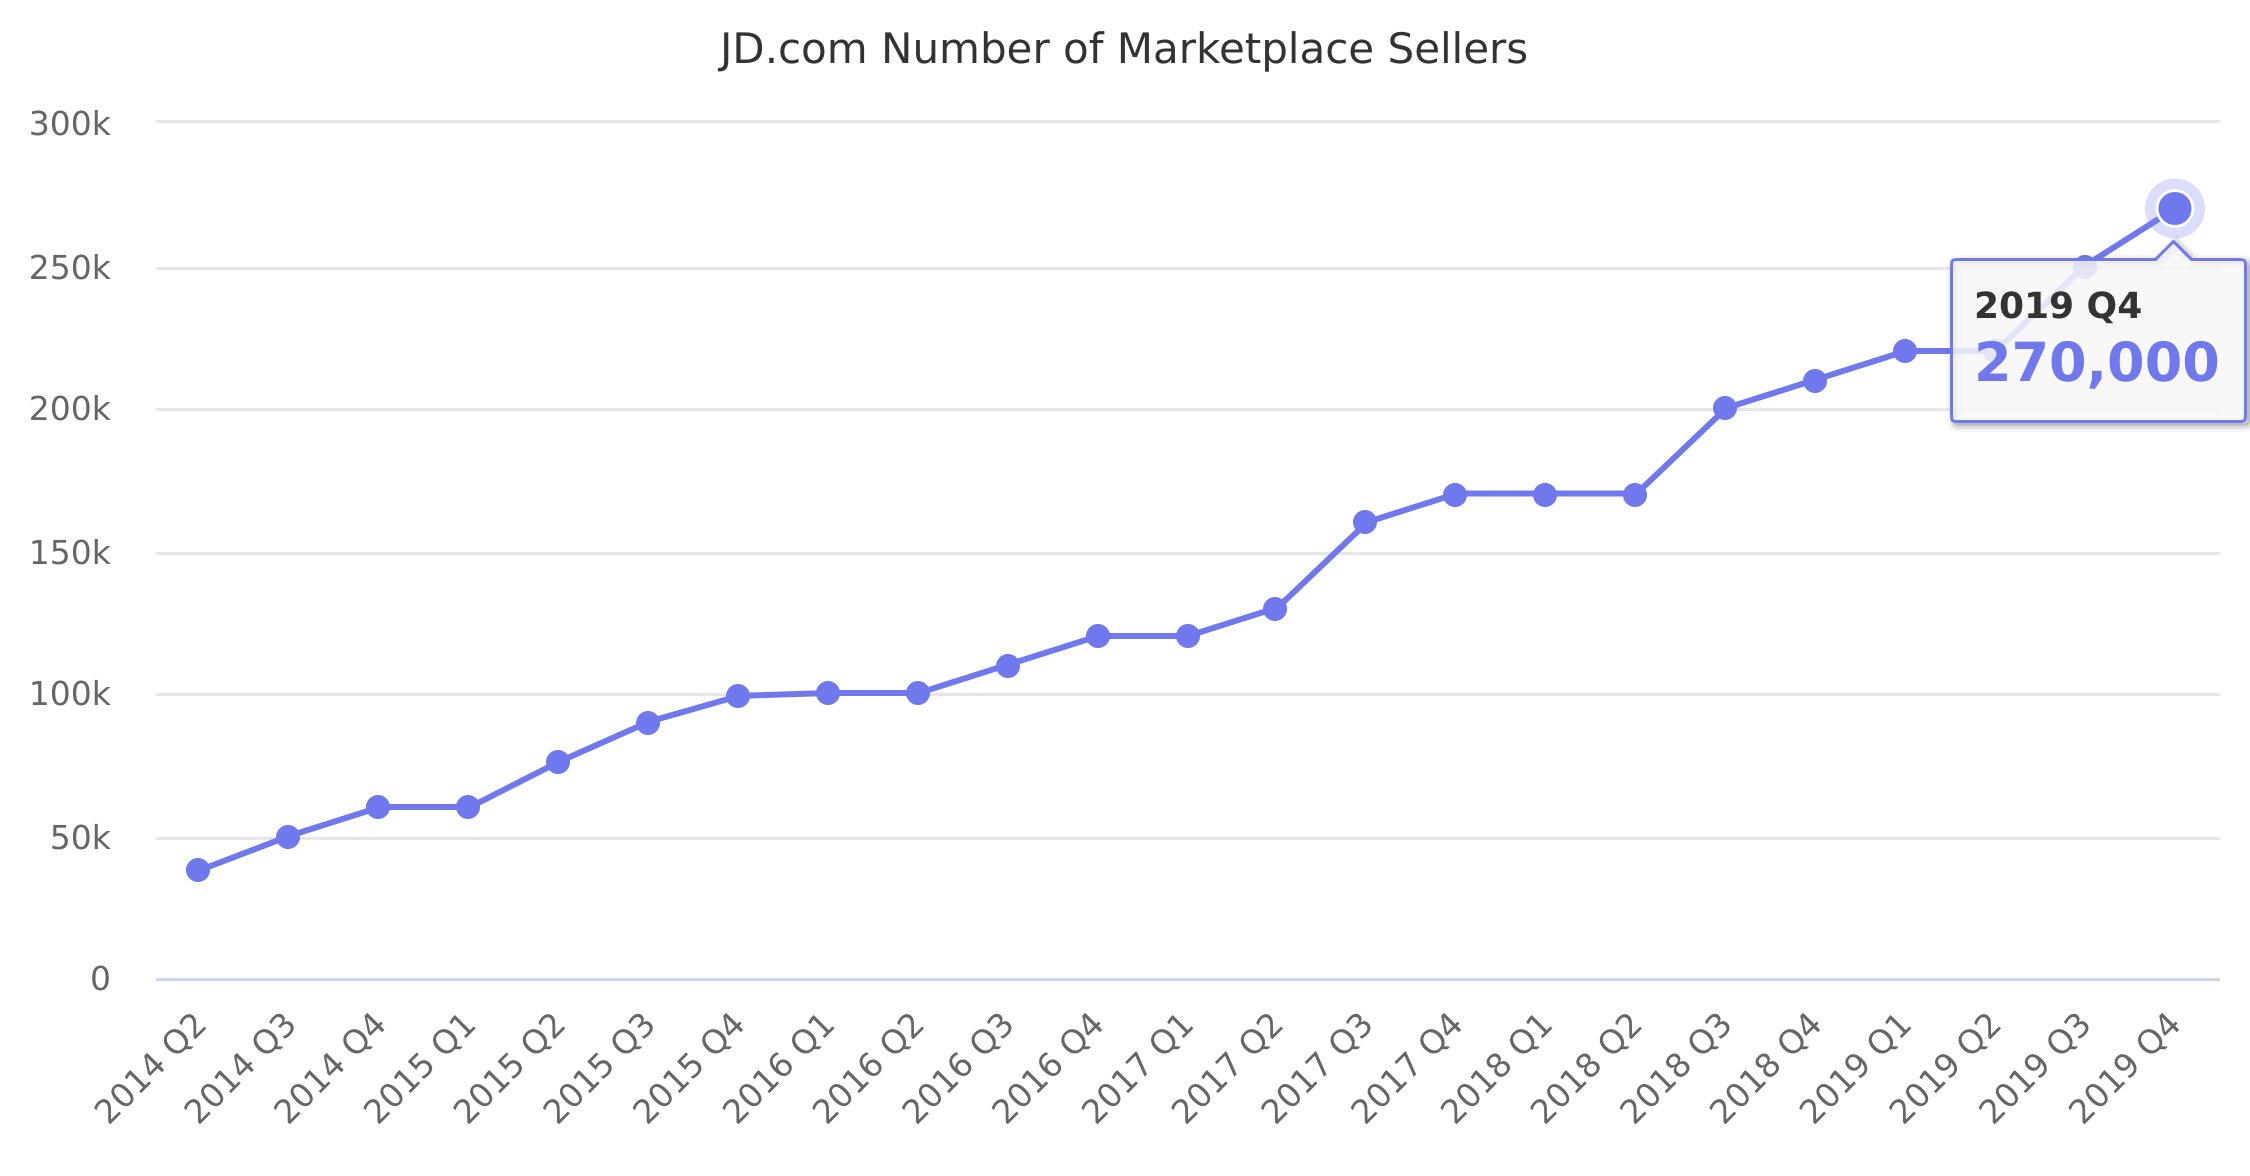 JD.com Number of Marketplace Sellers 2014-2017